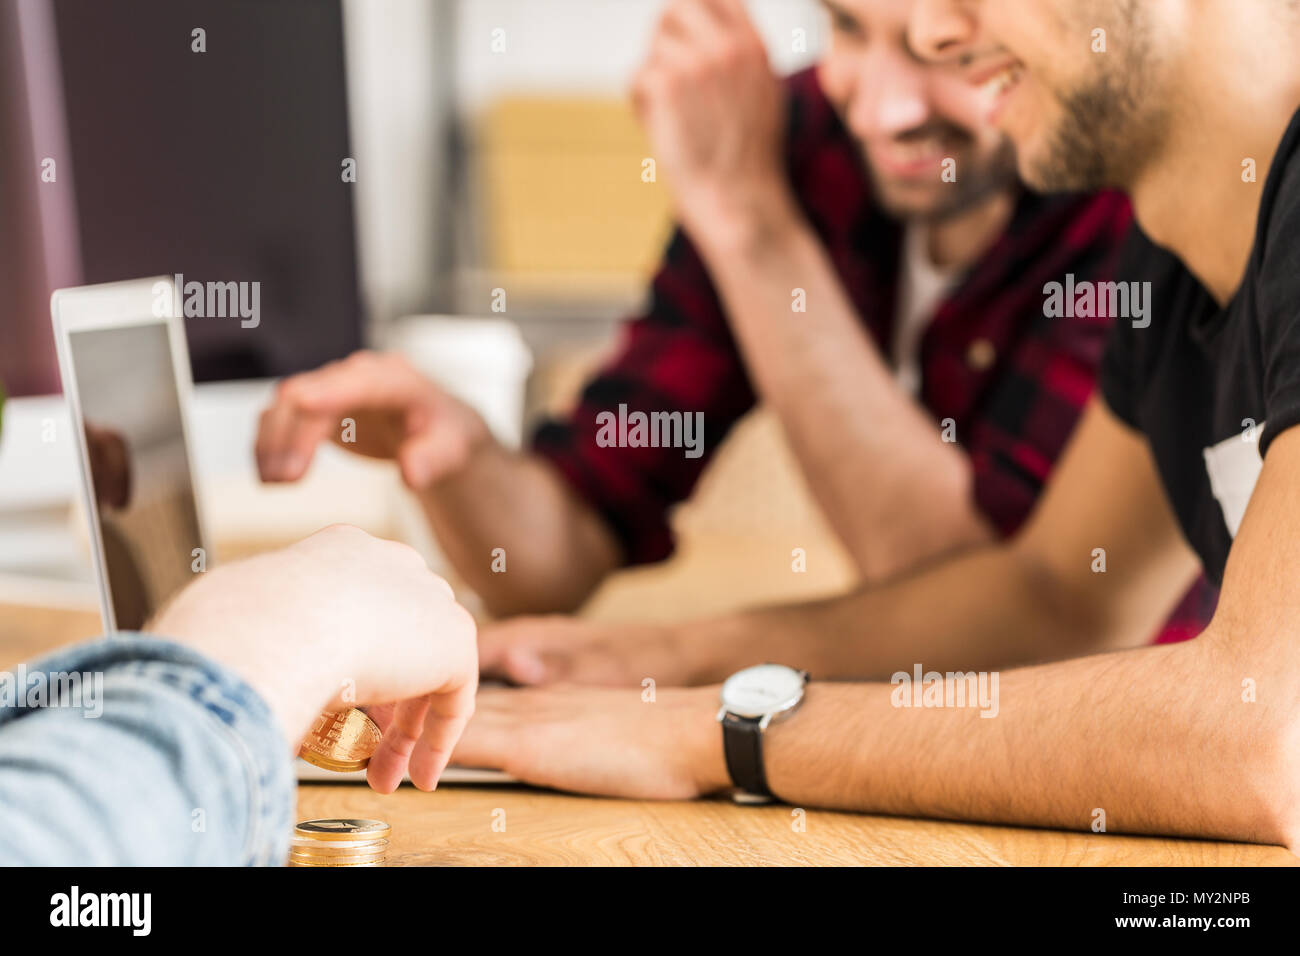 Group of happy friends sitting together in front of a laptop. Focus on man's hands holding cryptocurrency. Stock Photo